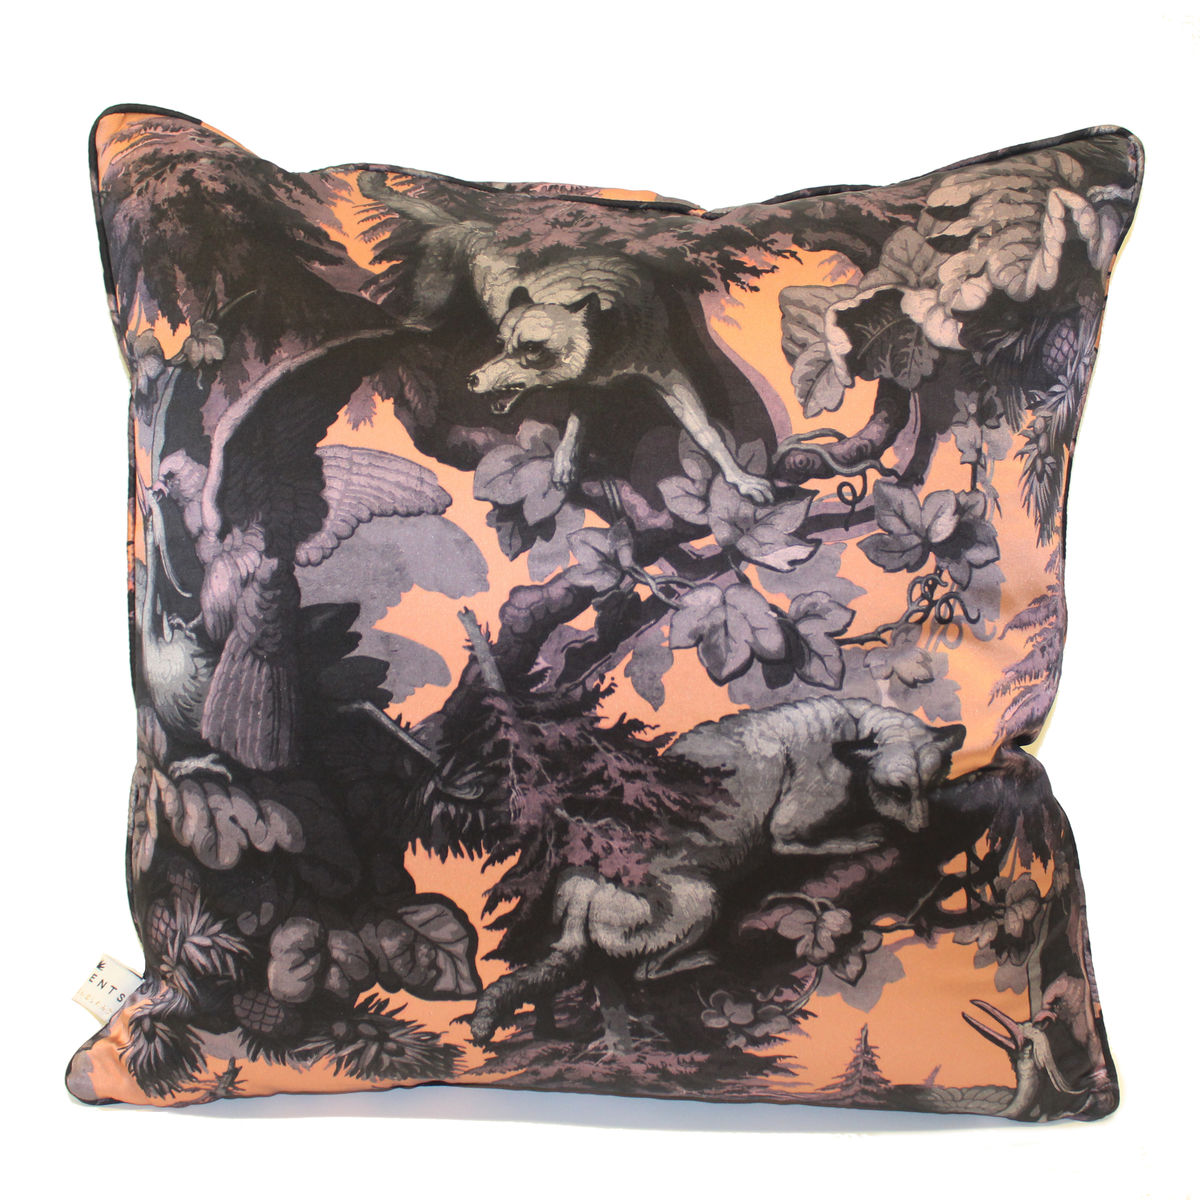 Silk Satin Large Cushion, Bialowieza Forest iced lilac, 60 x 60 cm - product images  of